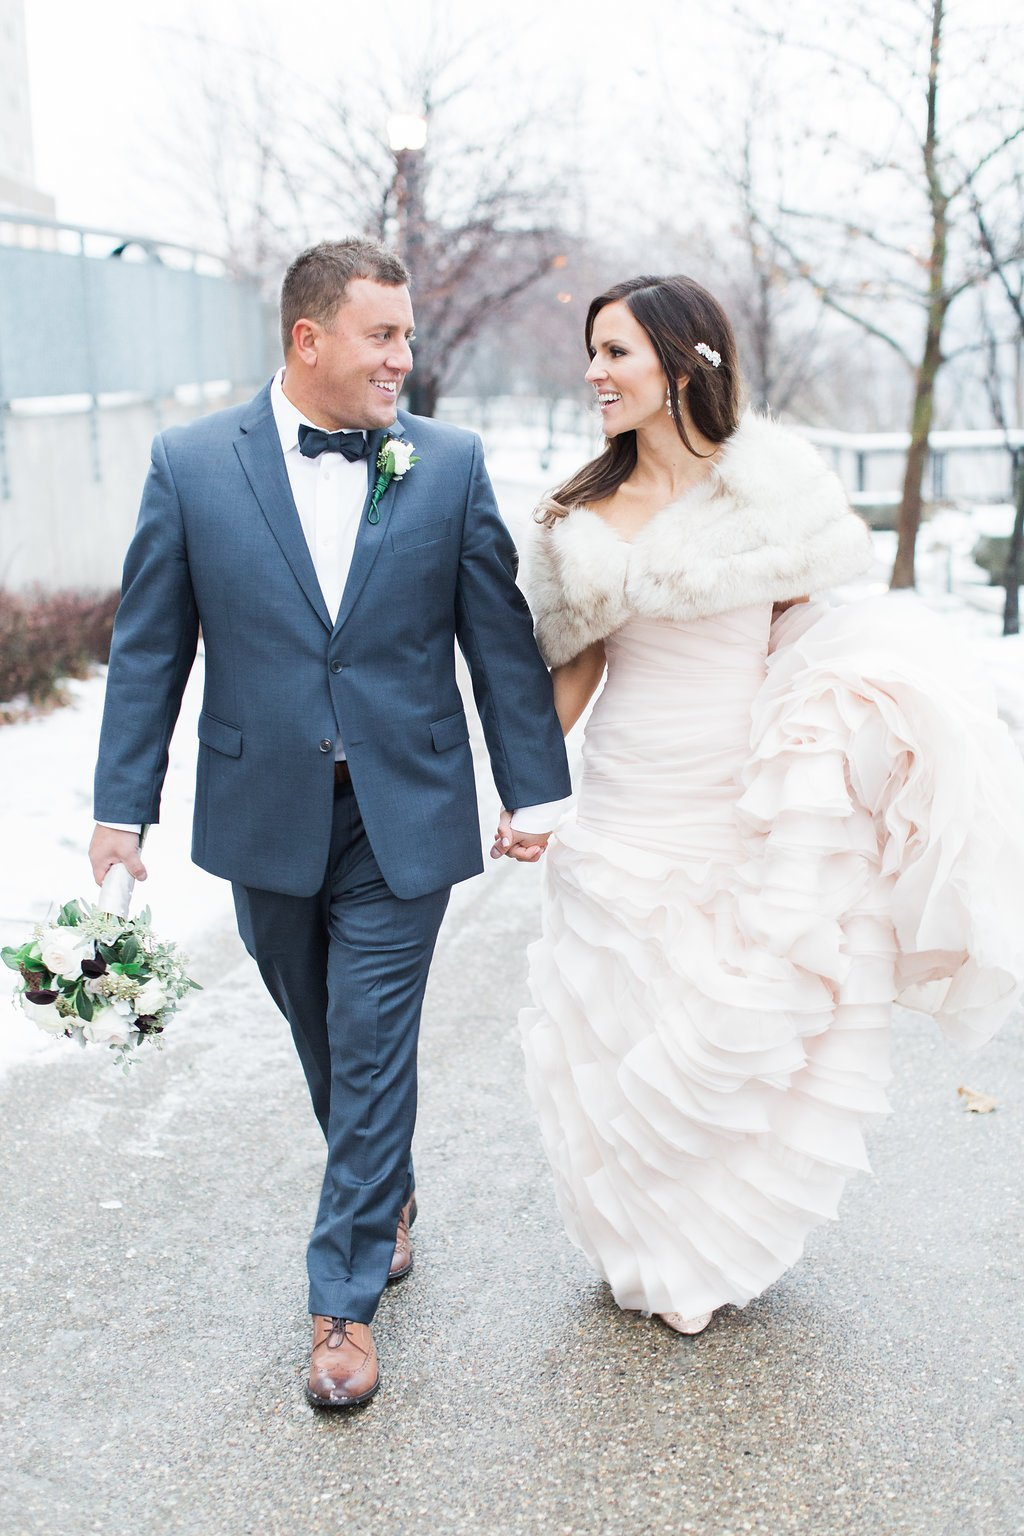 Bride and Groom photographs at December wedding bride wearing a blush pink wedding gown- J Verno Studios Winter Wedding